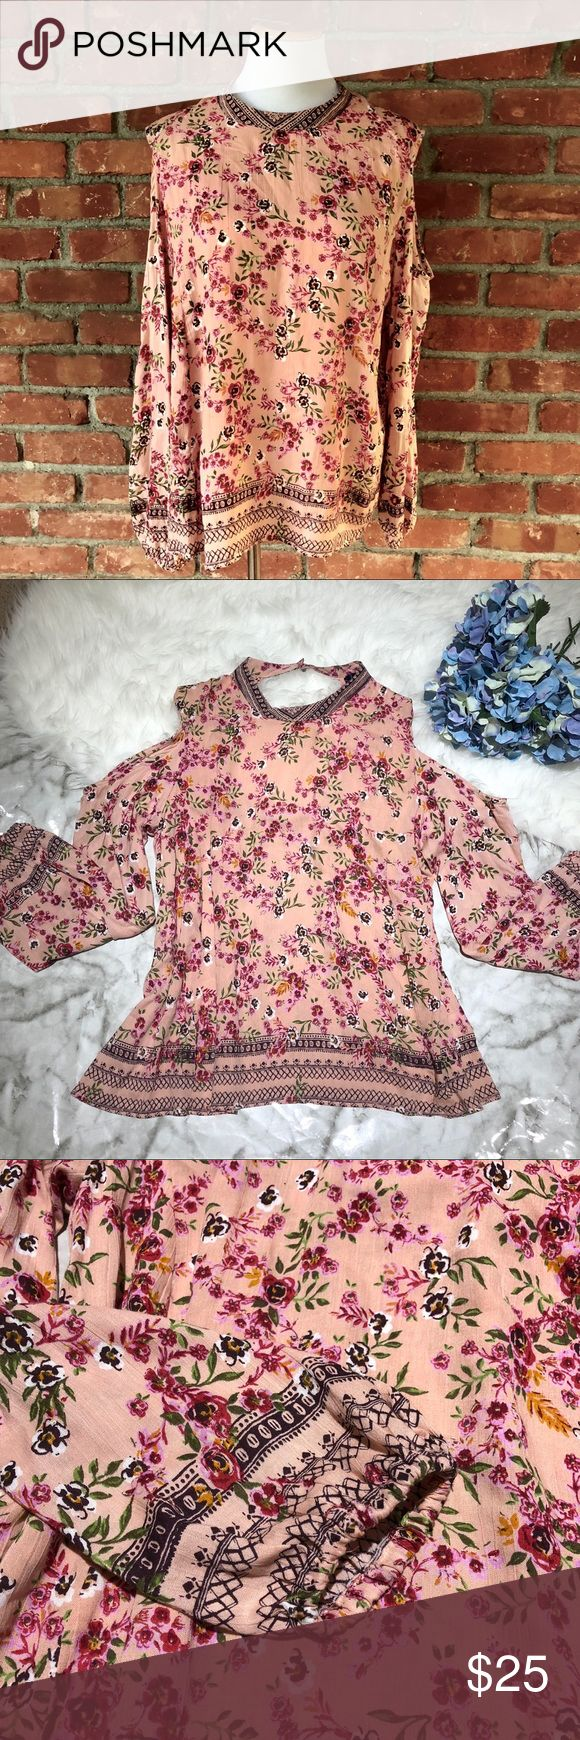 Blue Rain Floral Cold Shoulder Top EUC.   Approx. Measurement When Laying Flat: Total Length: 28in Chest Width: 24in Hip Width: 32in Waist Width: 26in Armhole Depth: 10in Sleeve Length: 19in Pit to Pit: 23in  💖Add this to a bundle 💚Don't like the Price? Send me an offer!  💜IG: mayra_alexandra_thrifts ❤️Please ask all questions before buying. Item not fitting does not warrant a low review. Francesca's Collections Tops Blouses